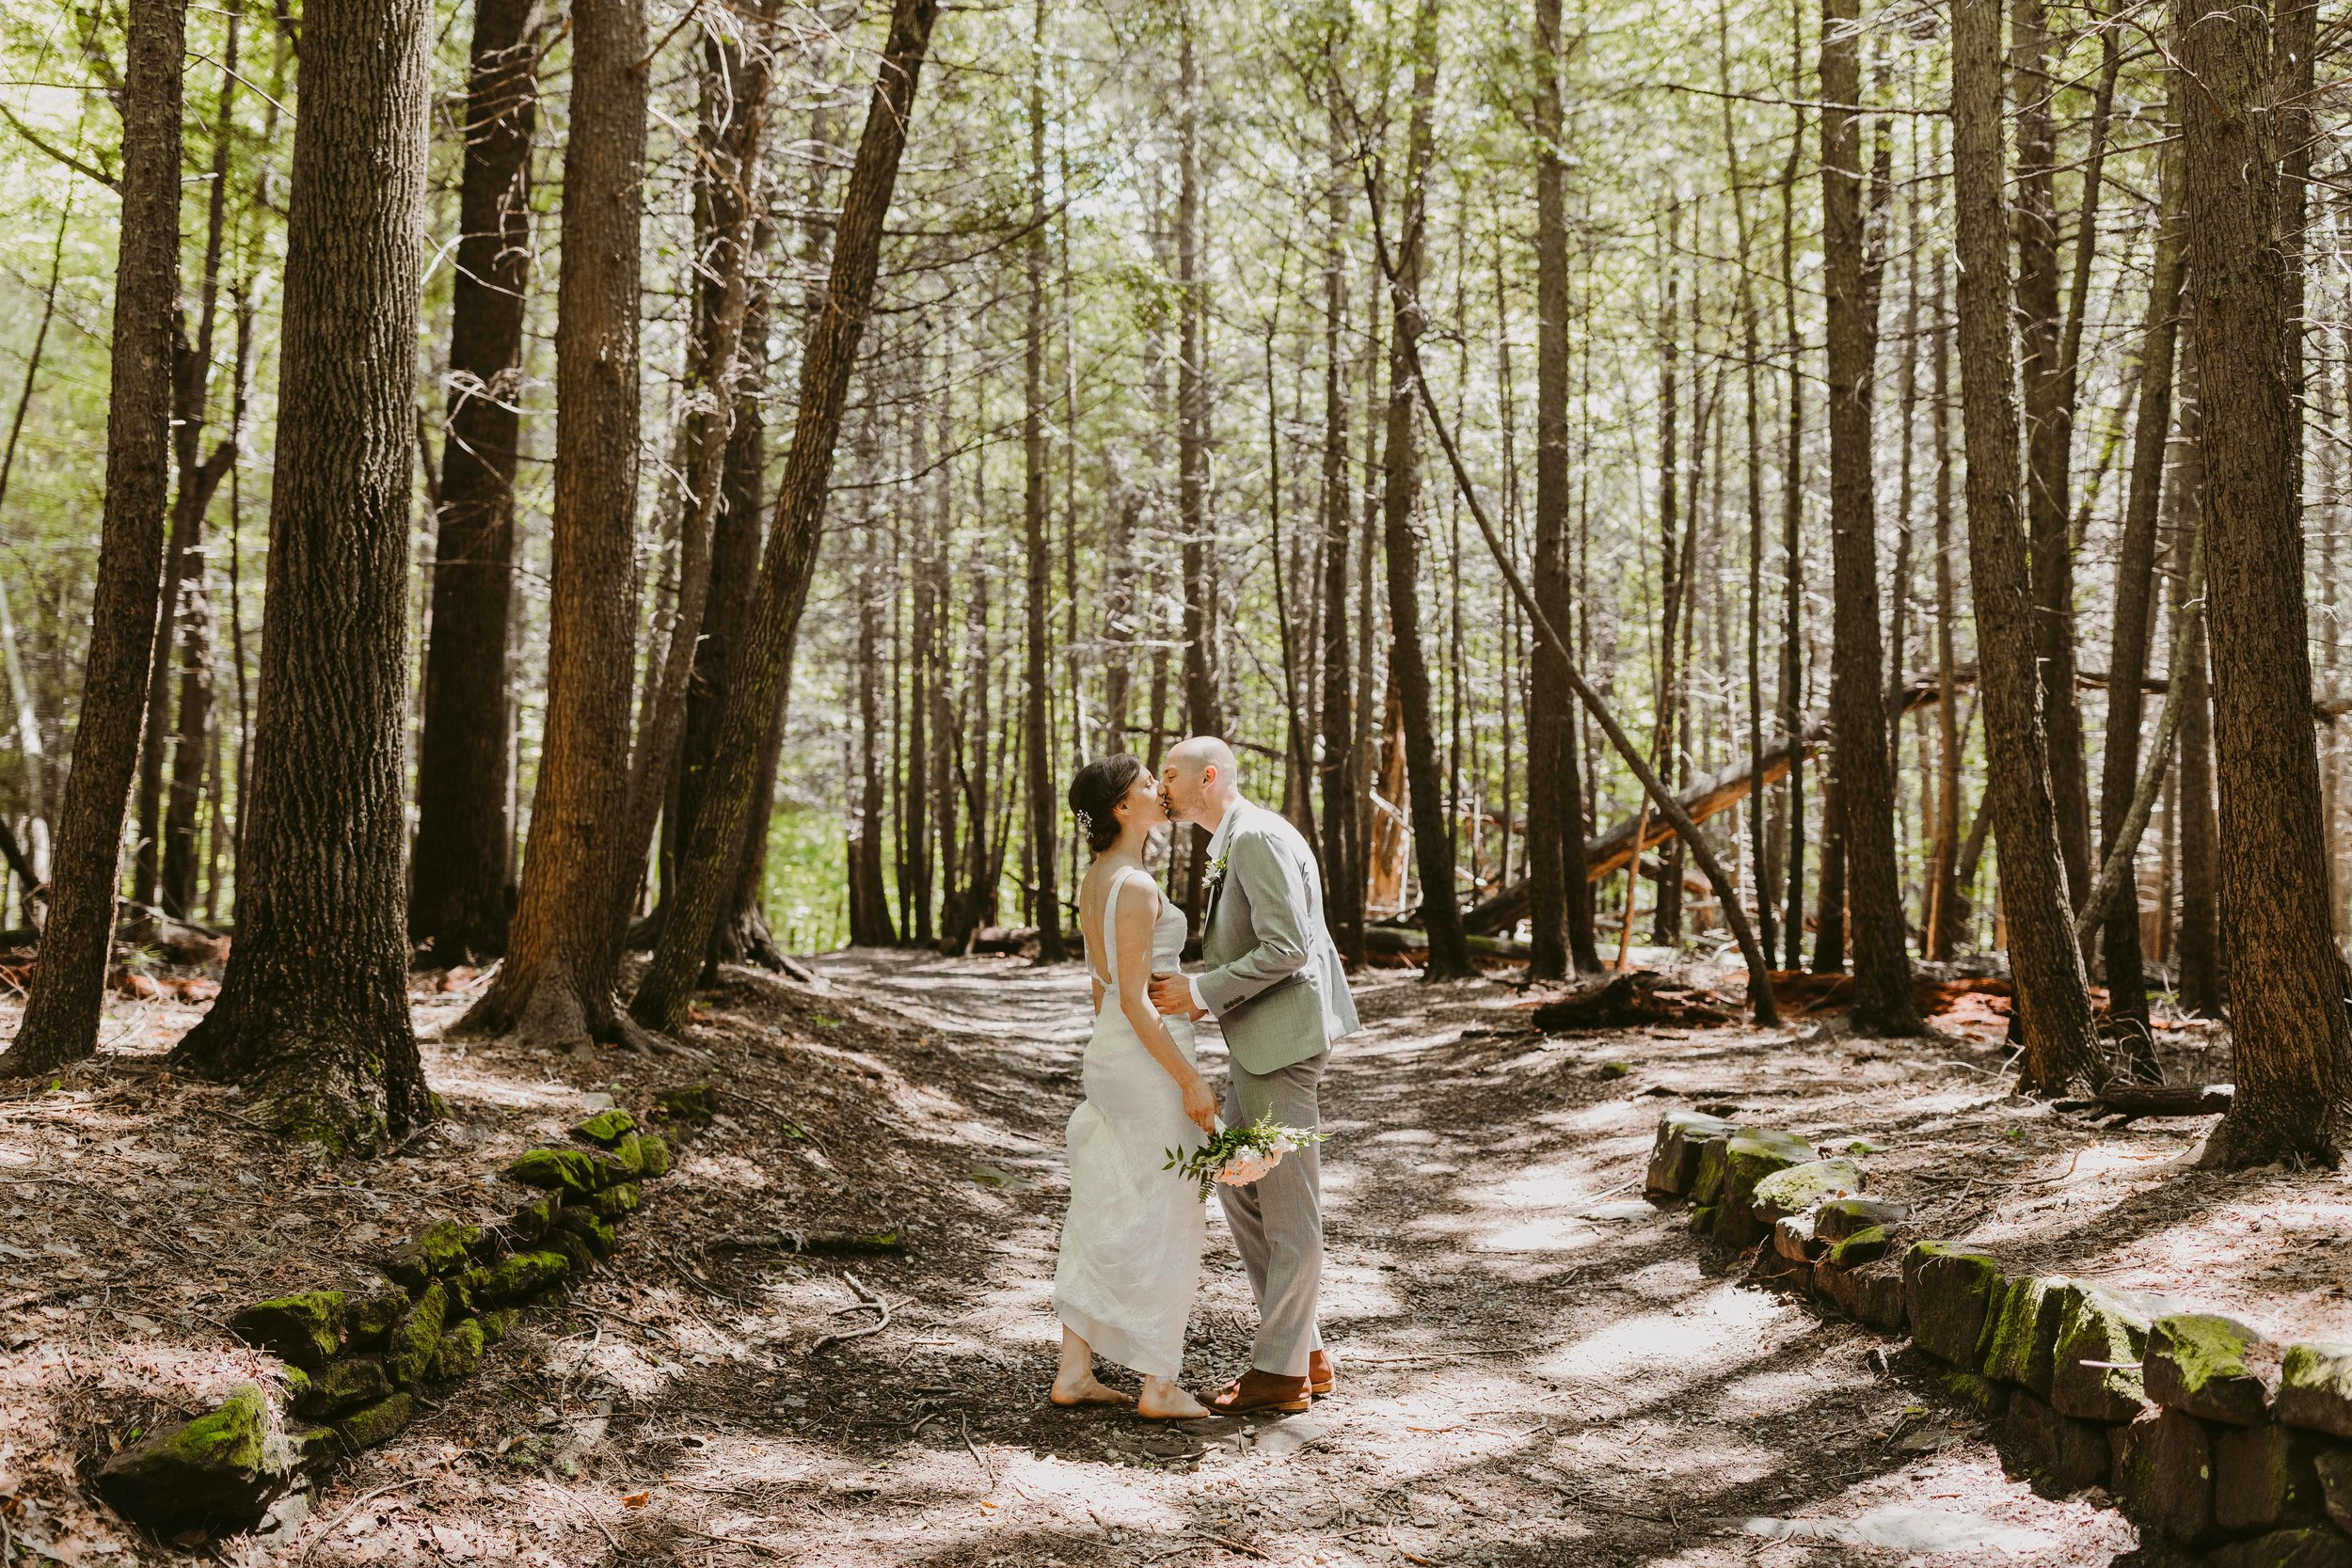 Matt + Katie on trail in Cuyahoga Valley National Park, where their wedding was held.